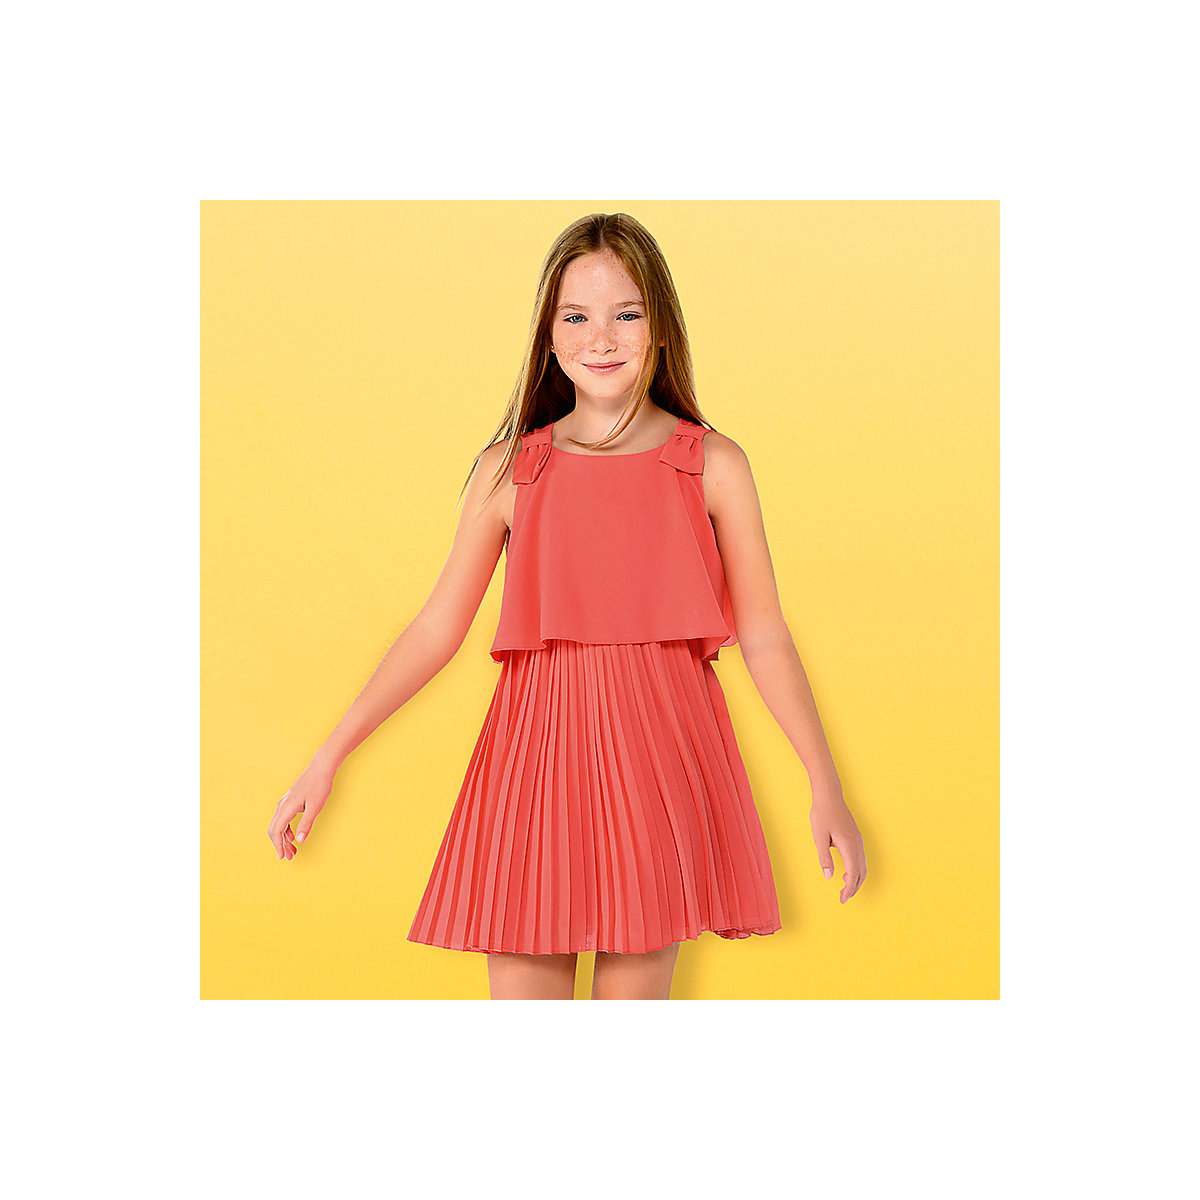 MAYORAL Dresses 10683716 Girl Children fitted pleated skirt Orange Polyester Casual Solid Knee-Length Sleeveless Sleeve